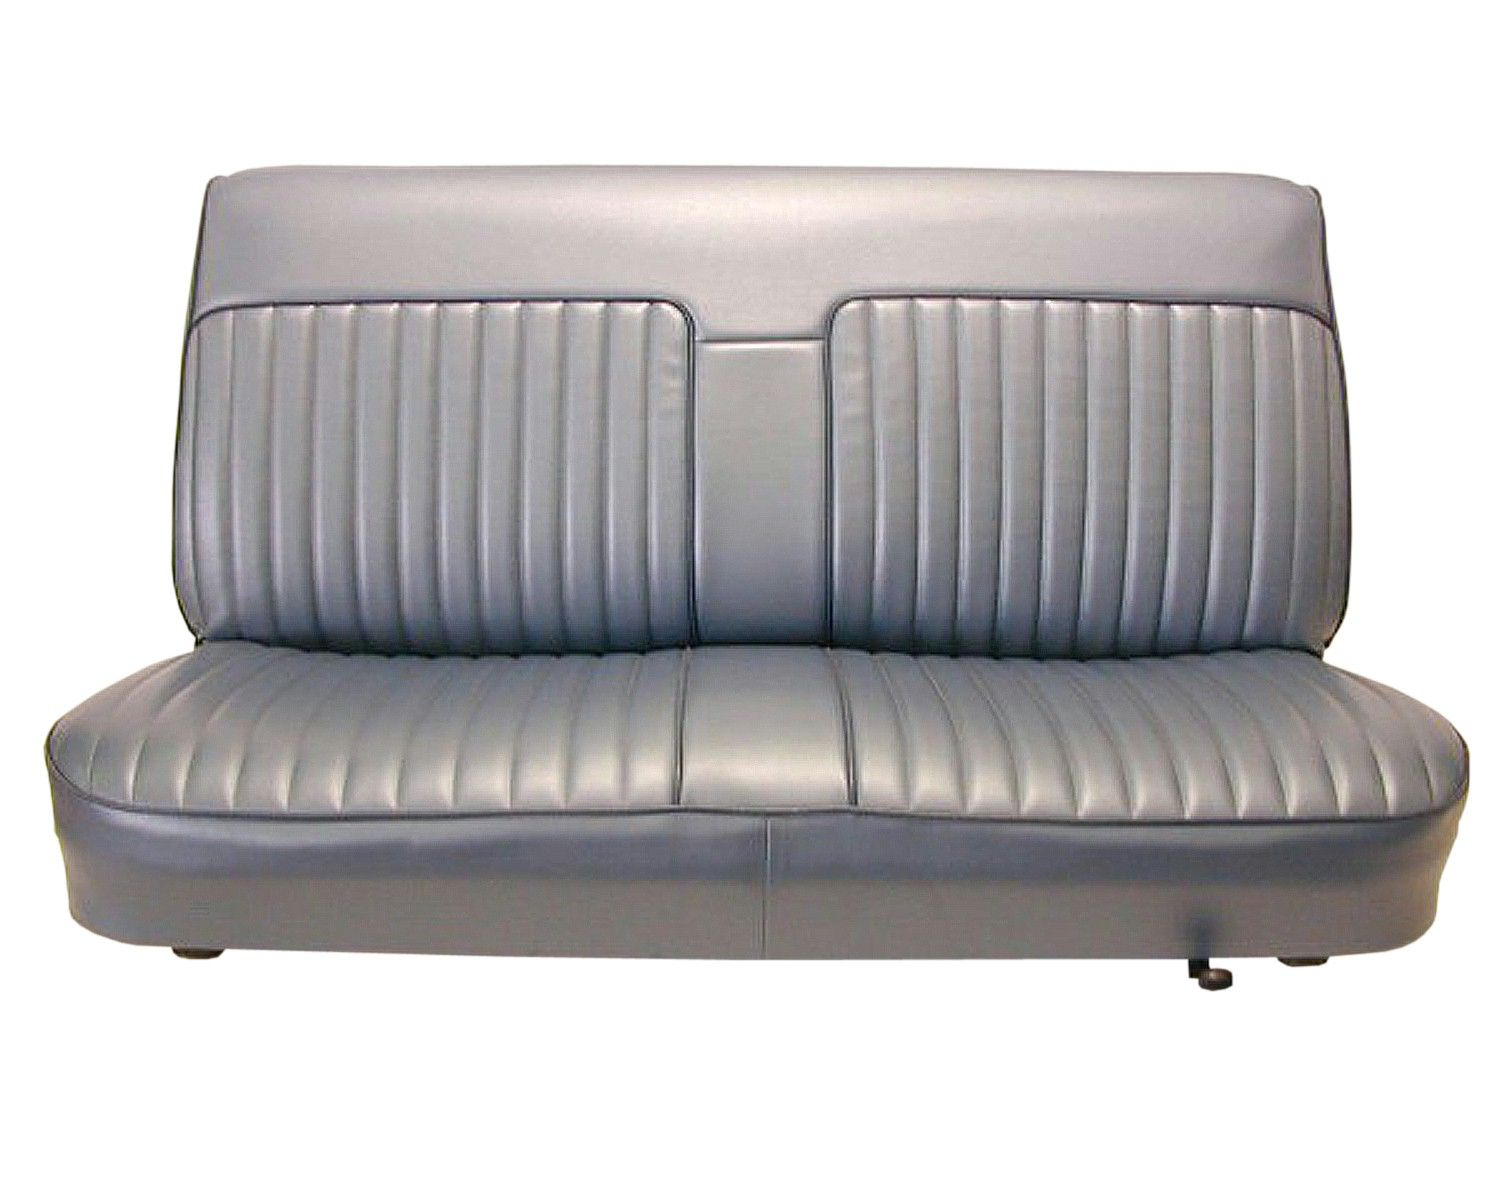 1989 Chevy S10 Bench Seat Covers Velcromag